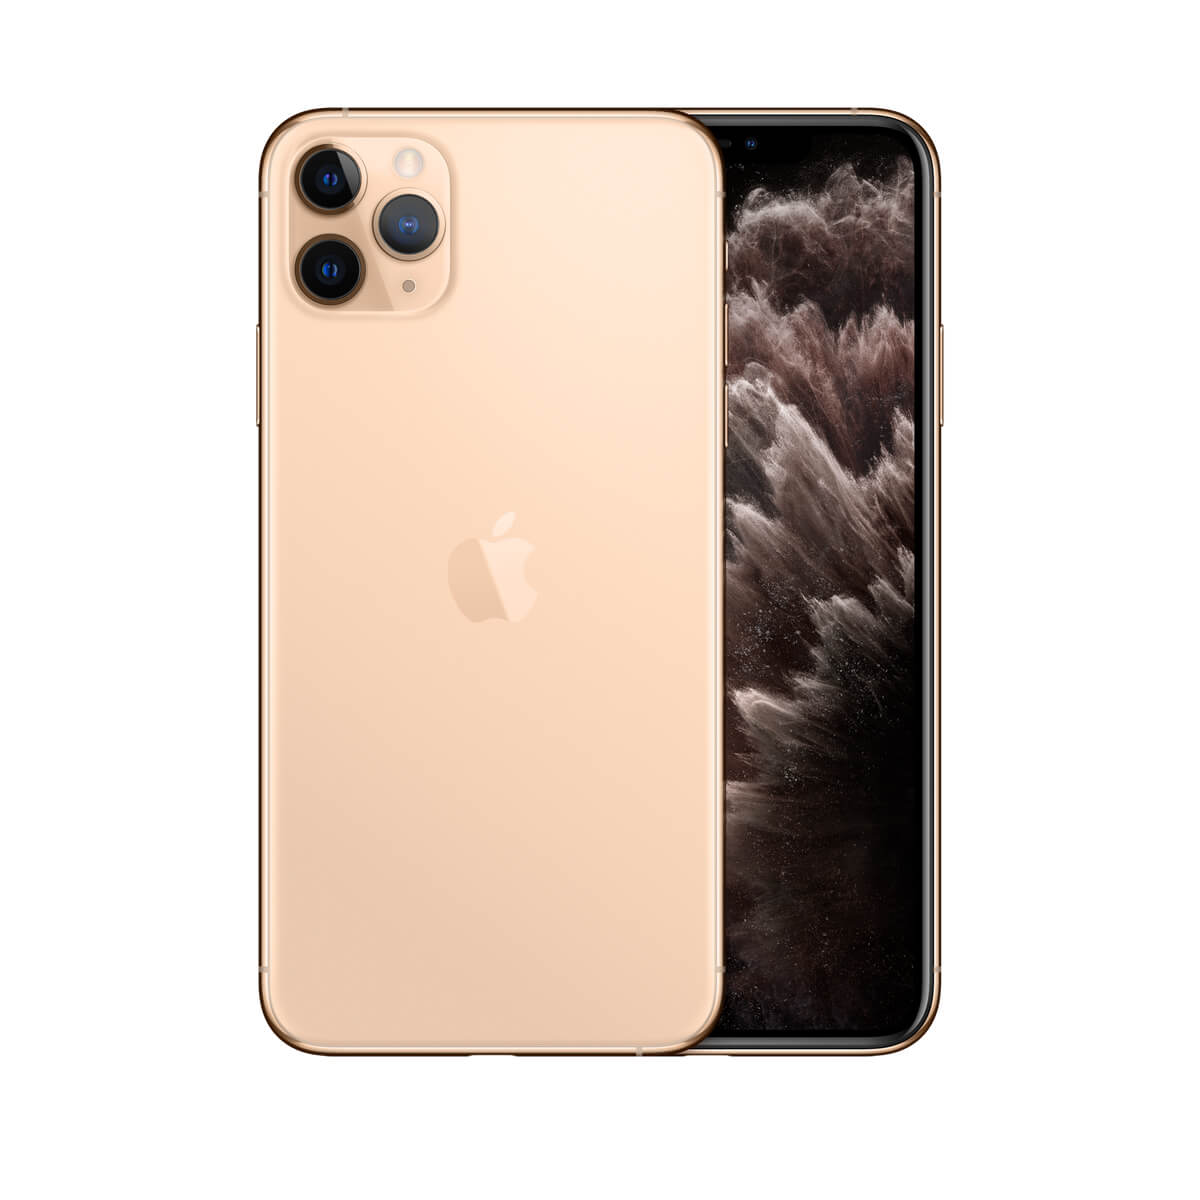 APPLE iPhone 11 Pro Max (512G)